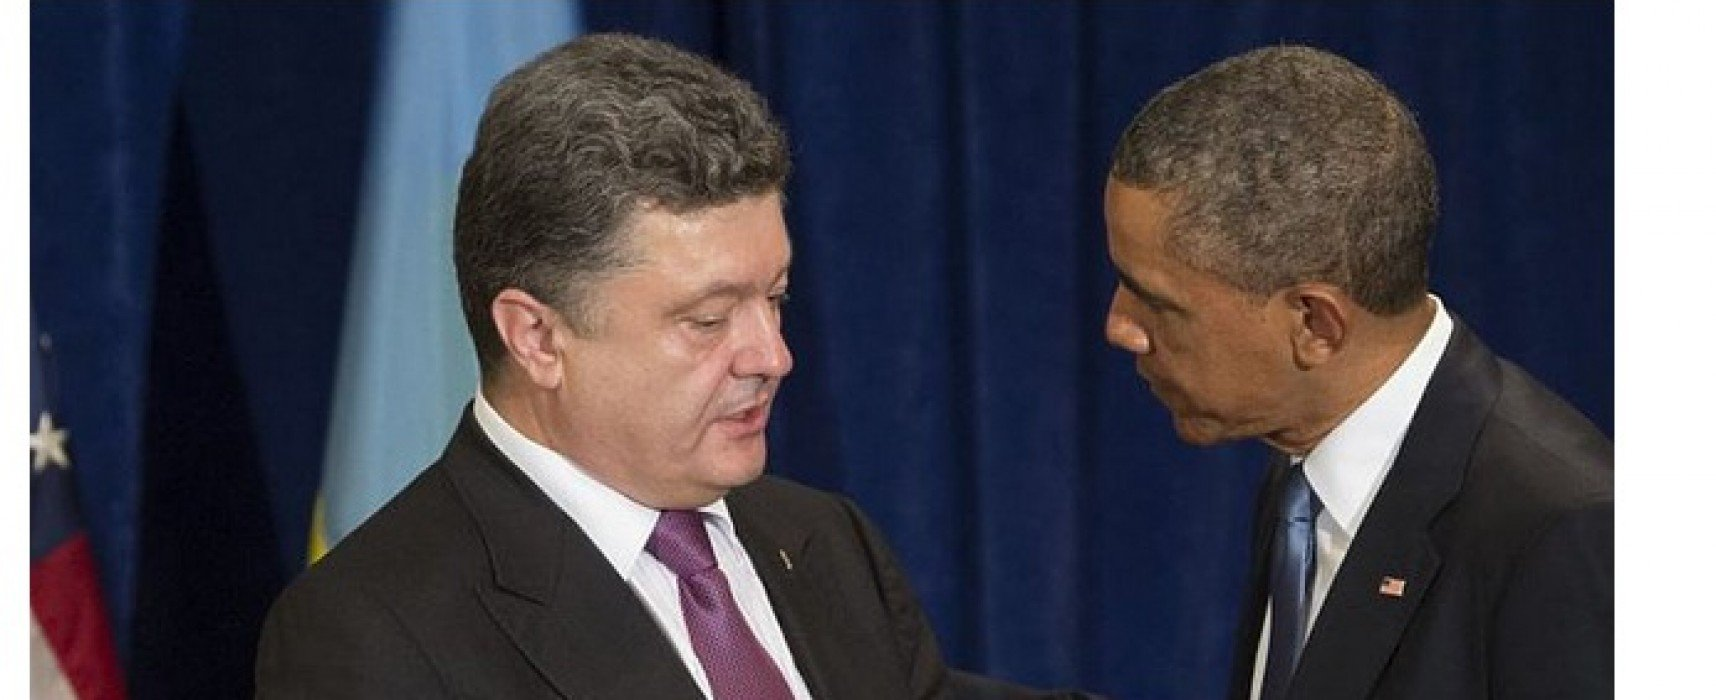 Fake: Obama Asks Poroshenko for Invitation to Crimea